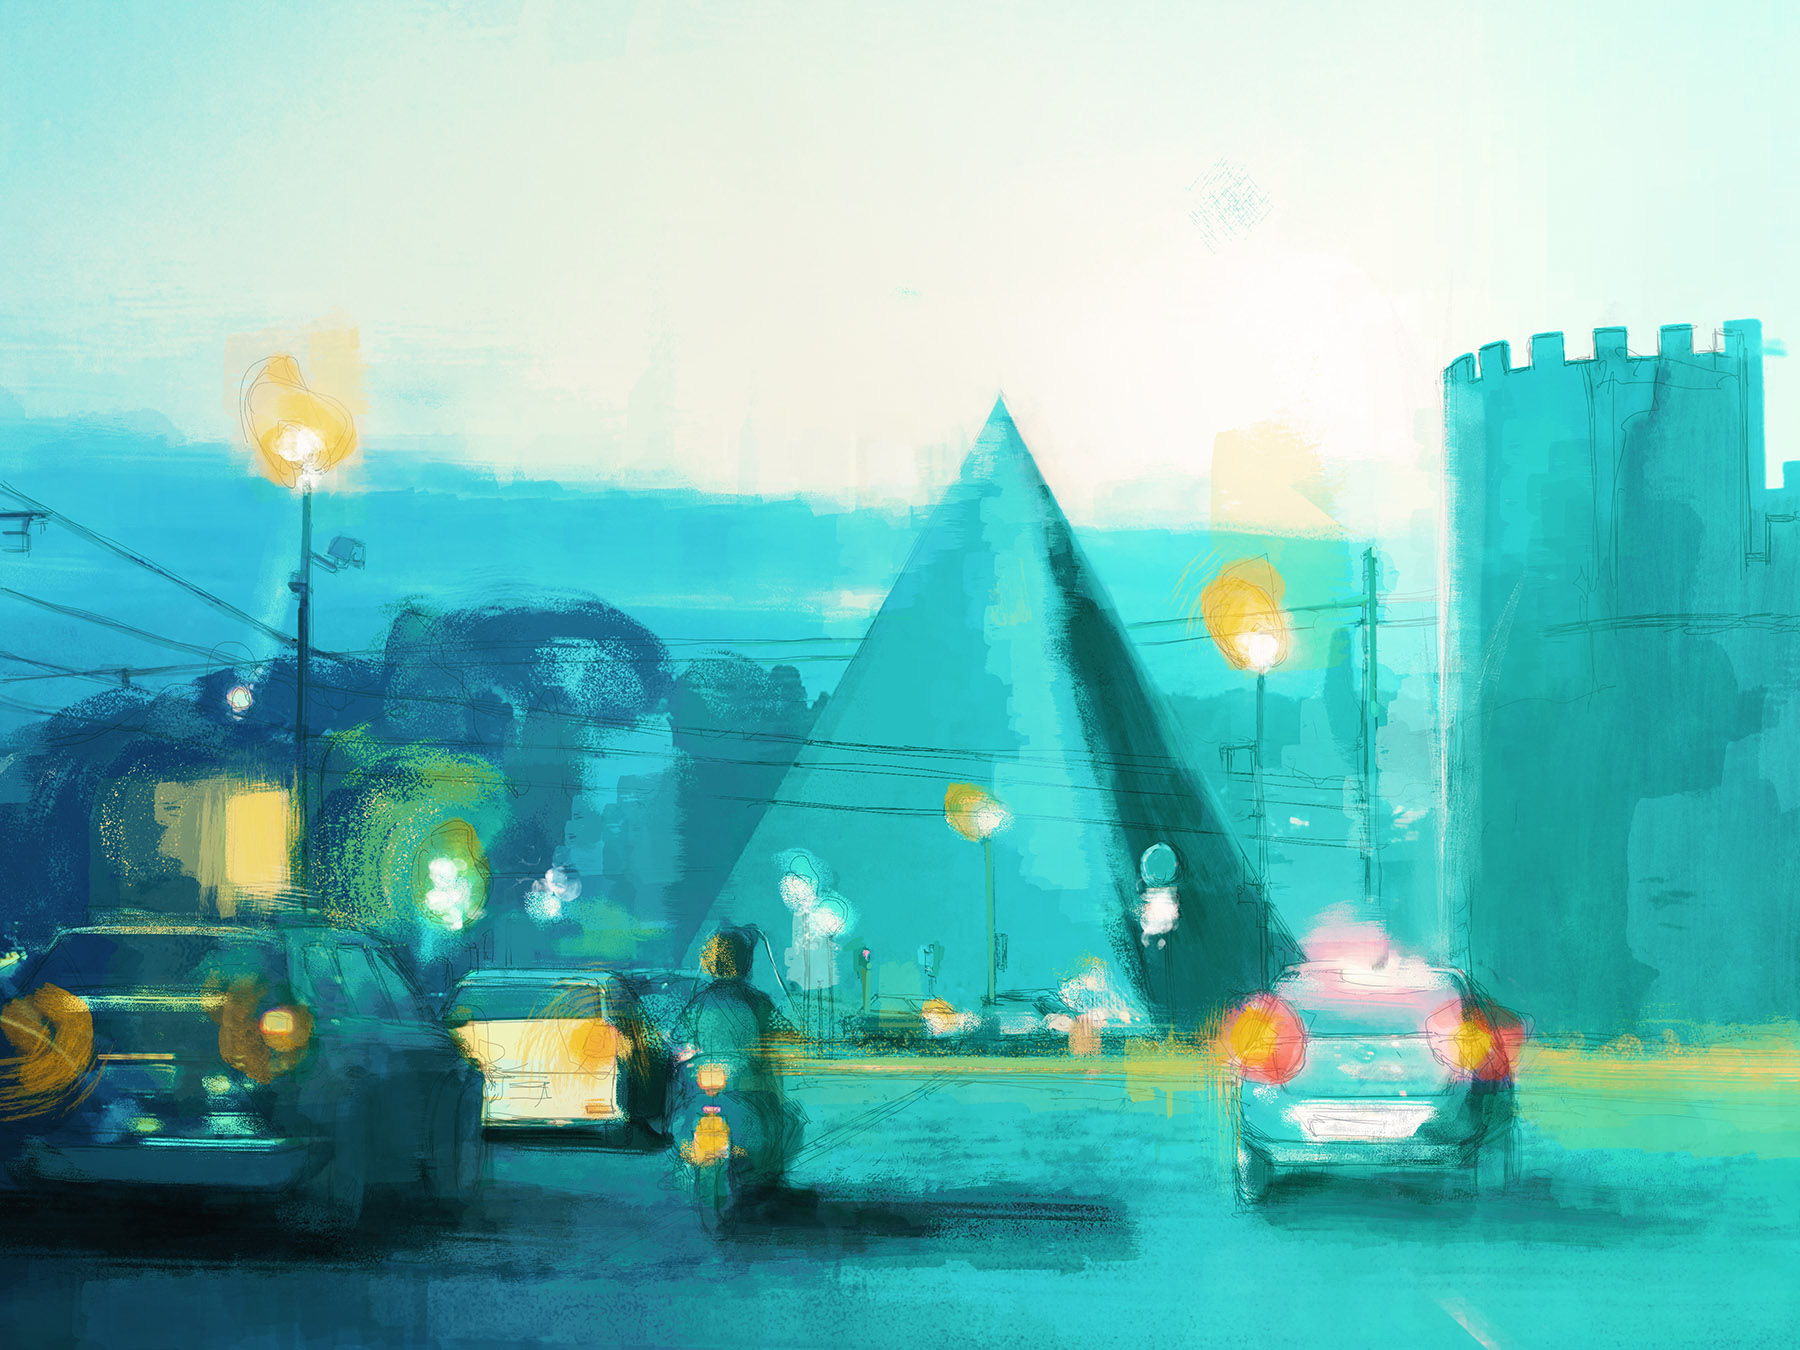 illustration_29_Traffic at pyramid_ateliercrilo.com.jpg